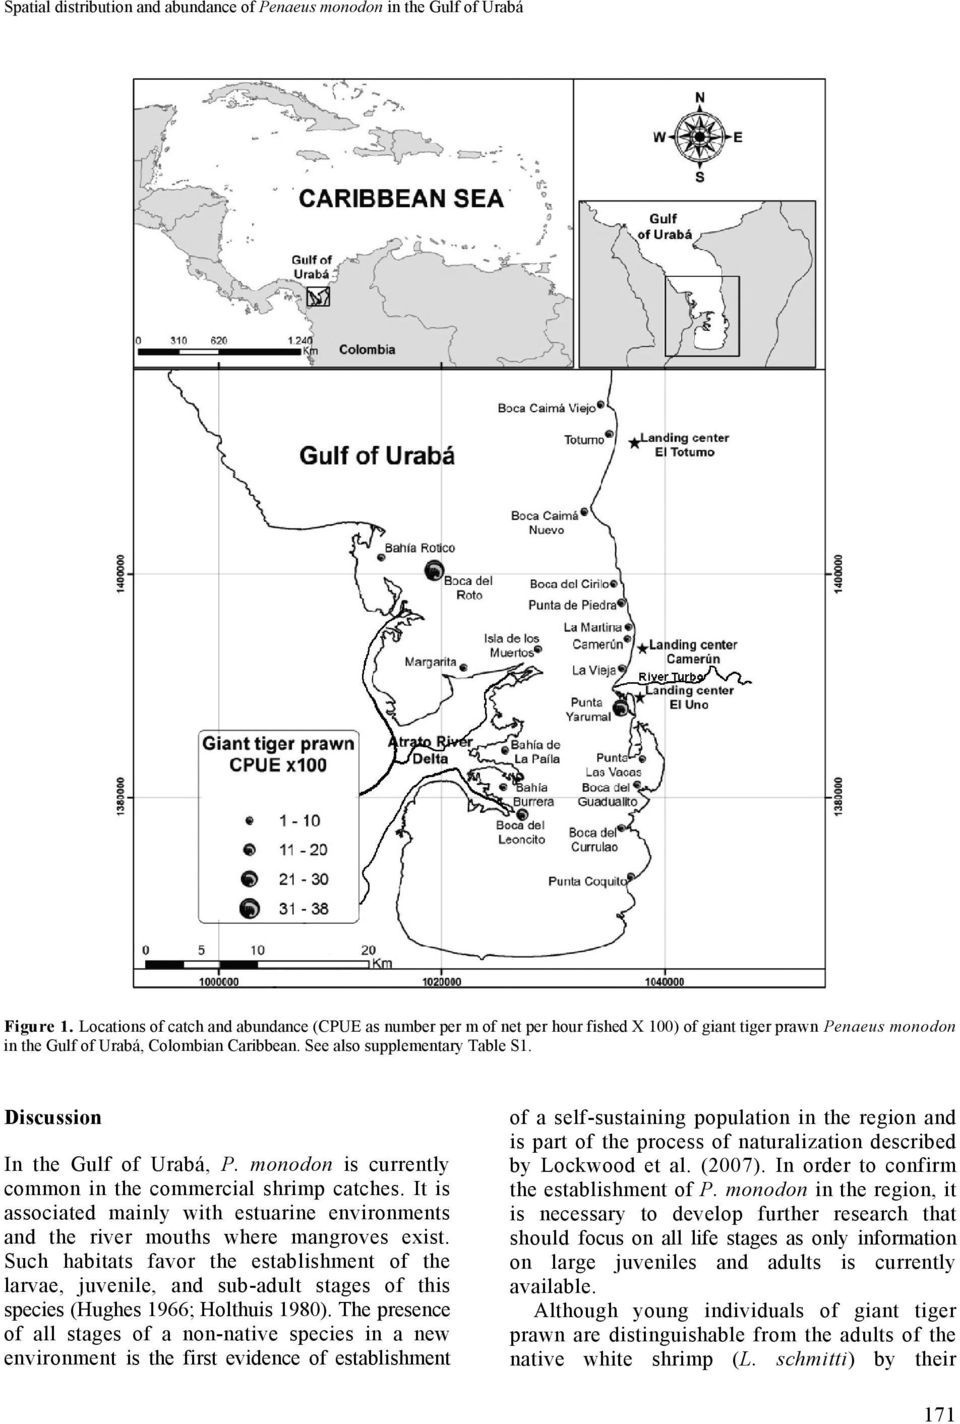 Discussion In the Gulf of Urabá, P. monodon is currently common in the commercial shrimp catches. It is associated mainly with estuarine environments and the river mouths where mangroves exist.